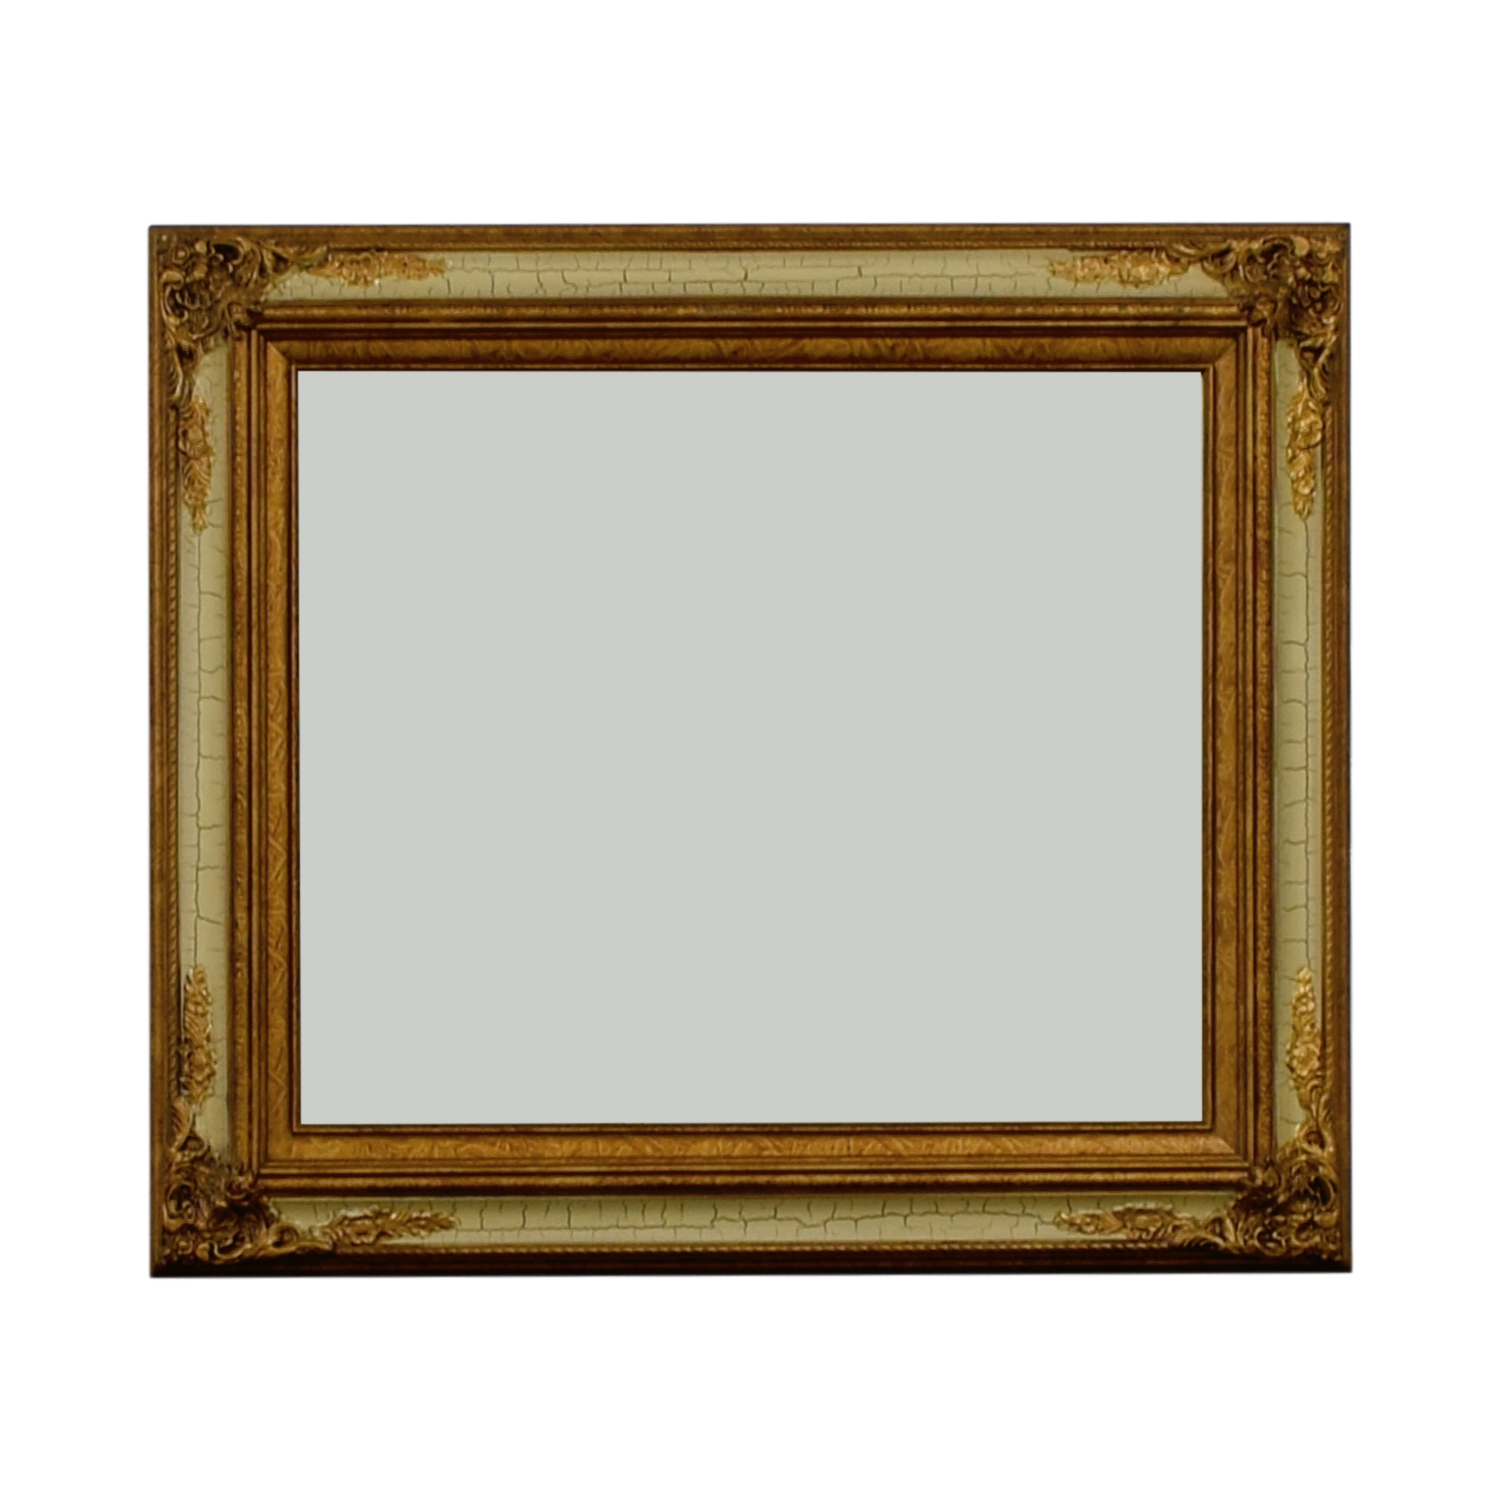 buy Art & Picture Store Art & Picture Store Vintage Gold Framed Mirror online